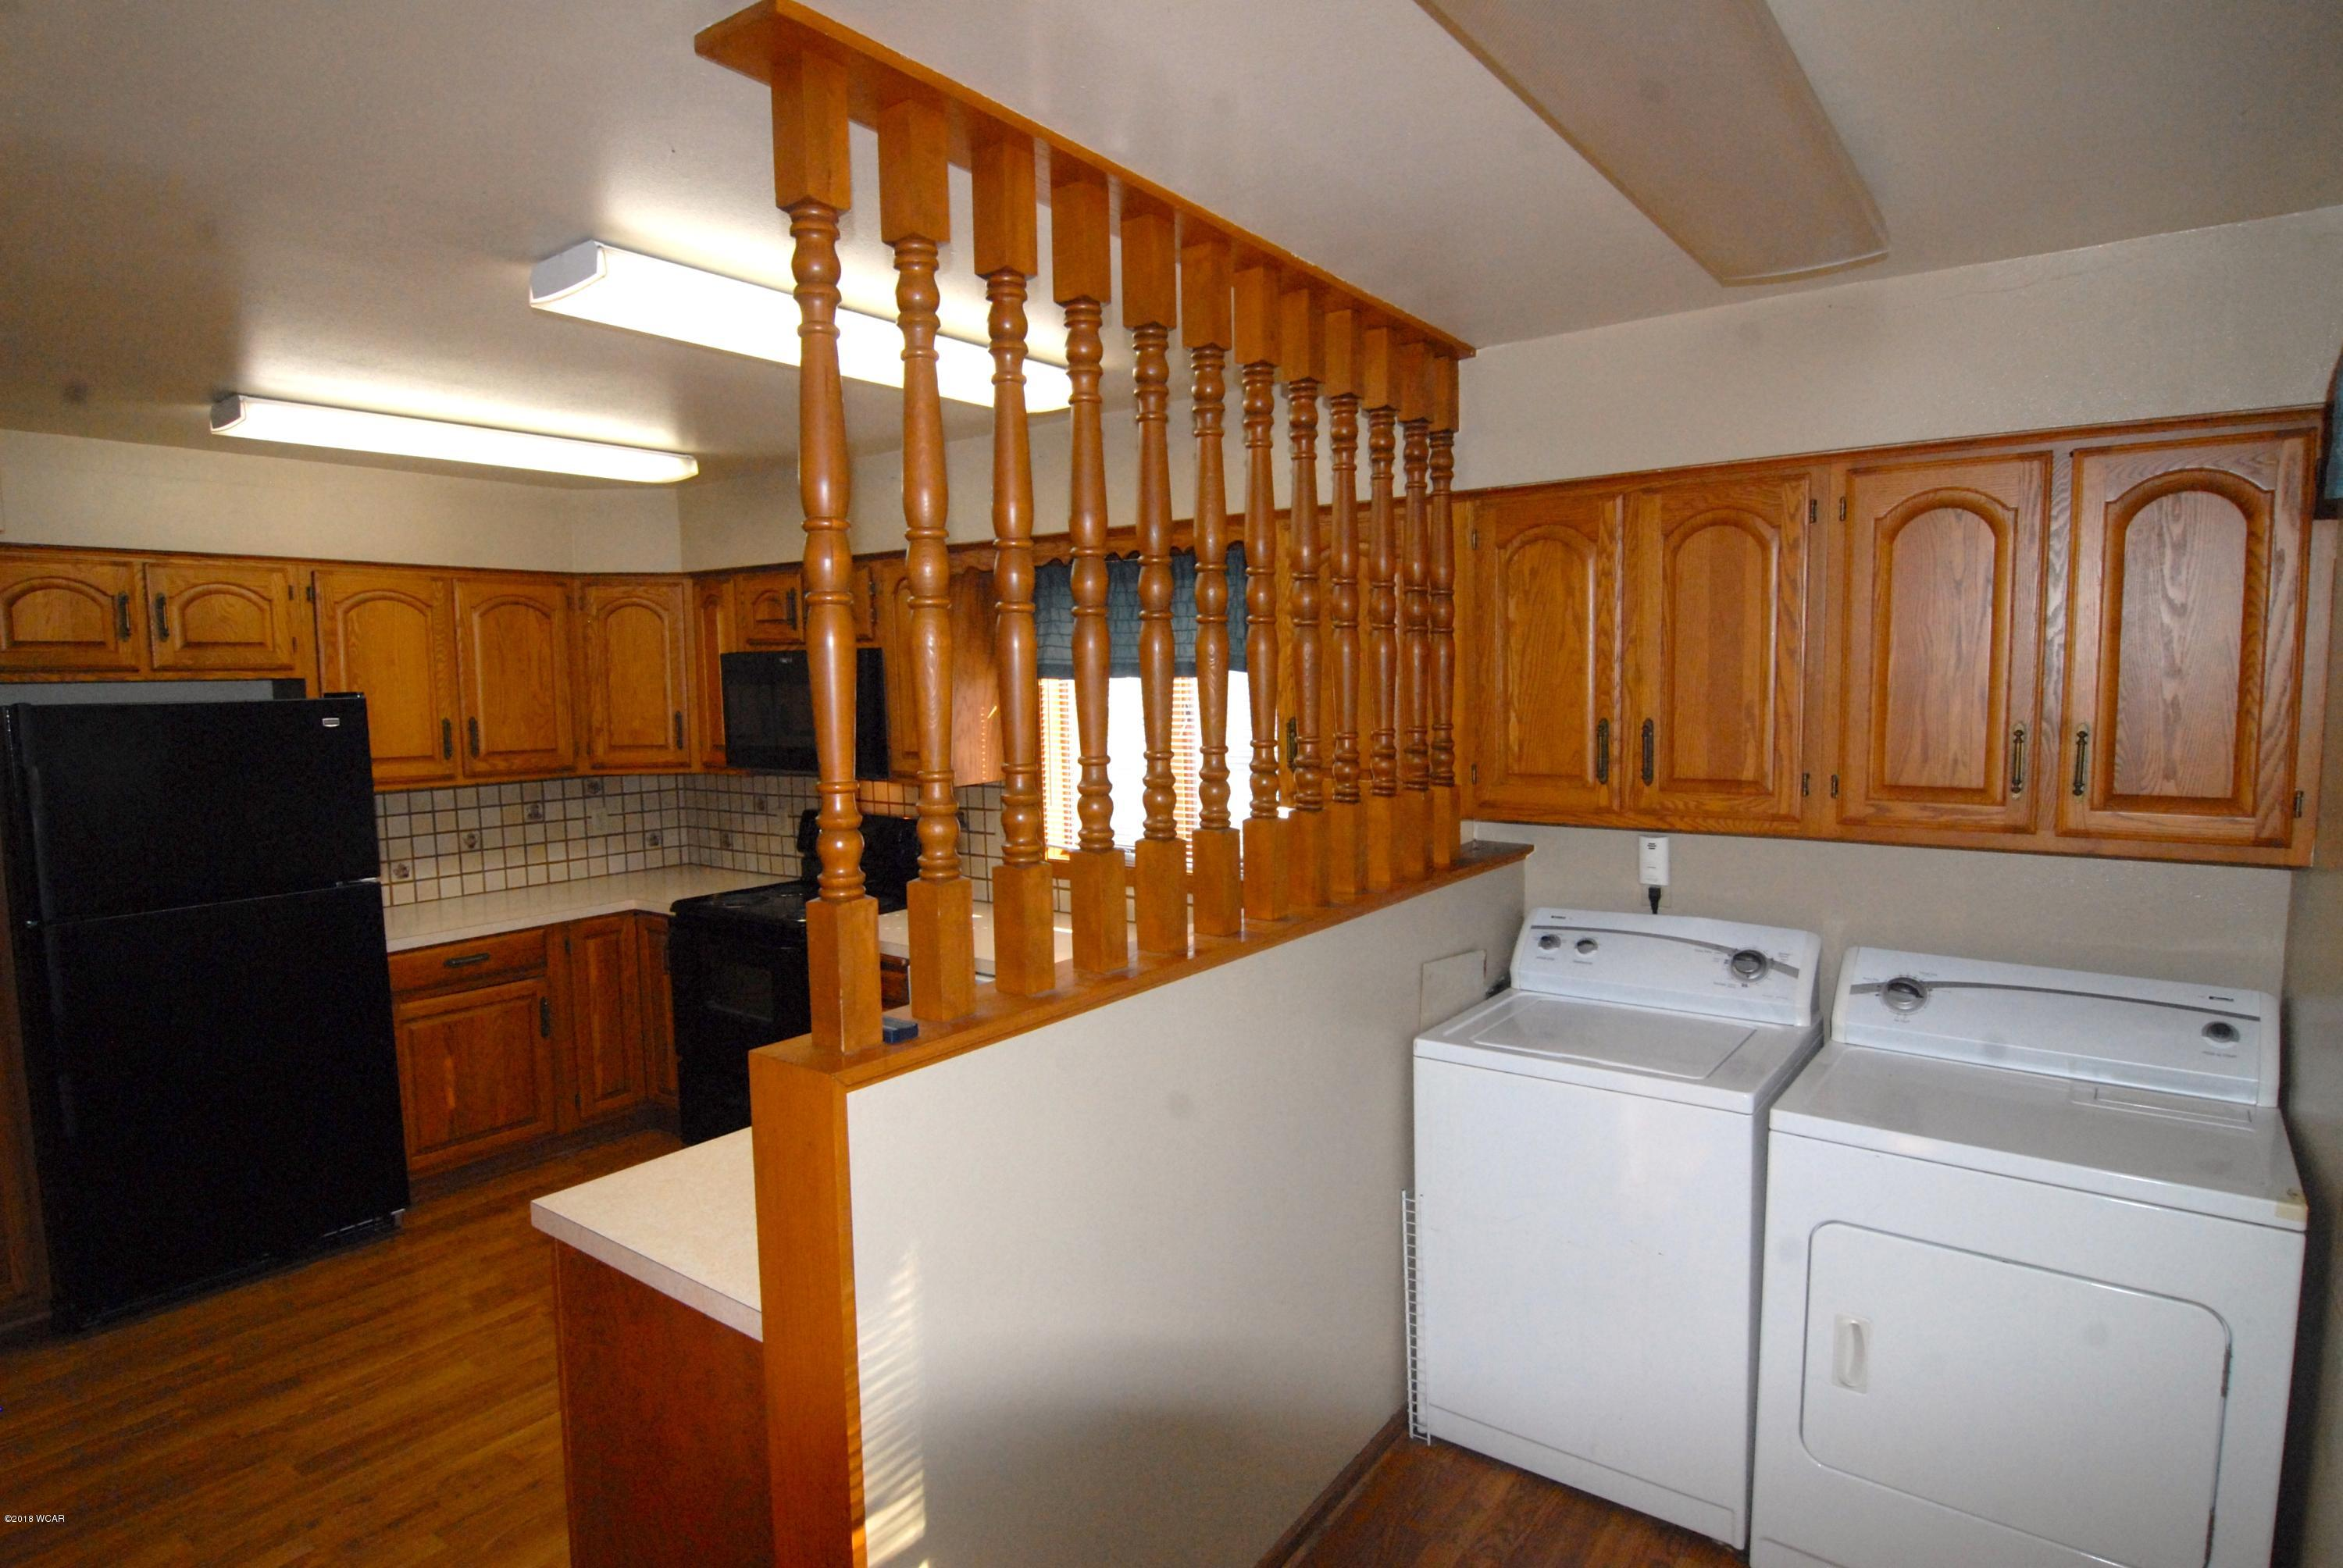 609 E Walnut Avenue,Olivia,3 Bedrooms Bedrooms,1 BathroomBathrooms,Single Family,E Walnut Avenue,6032709